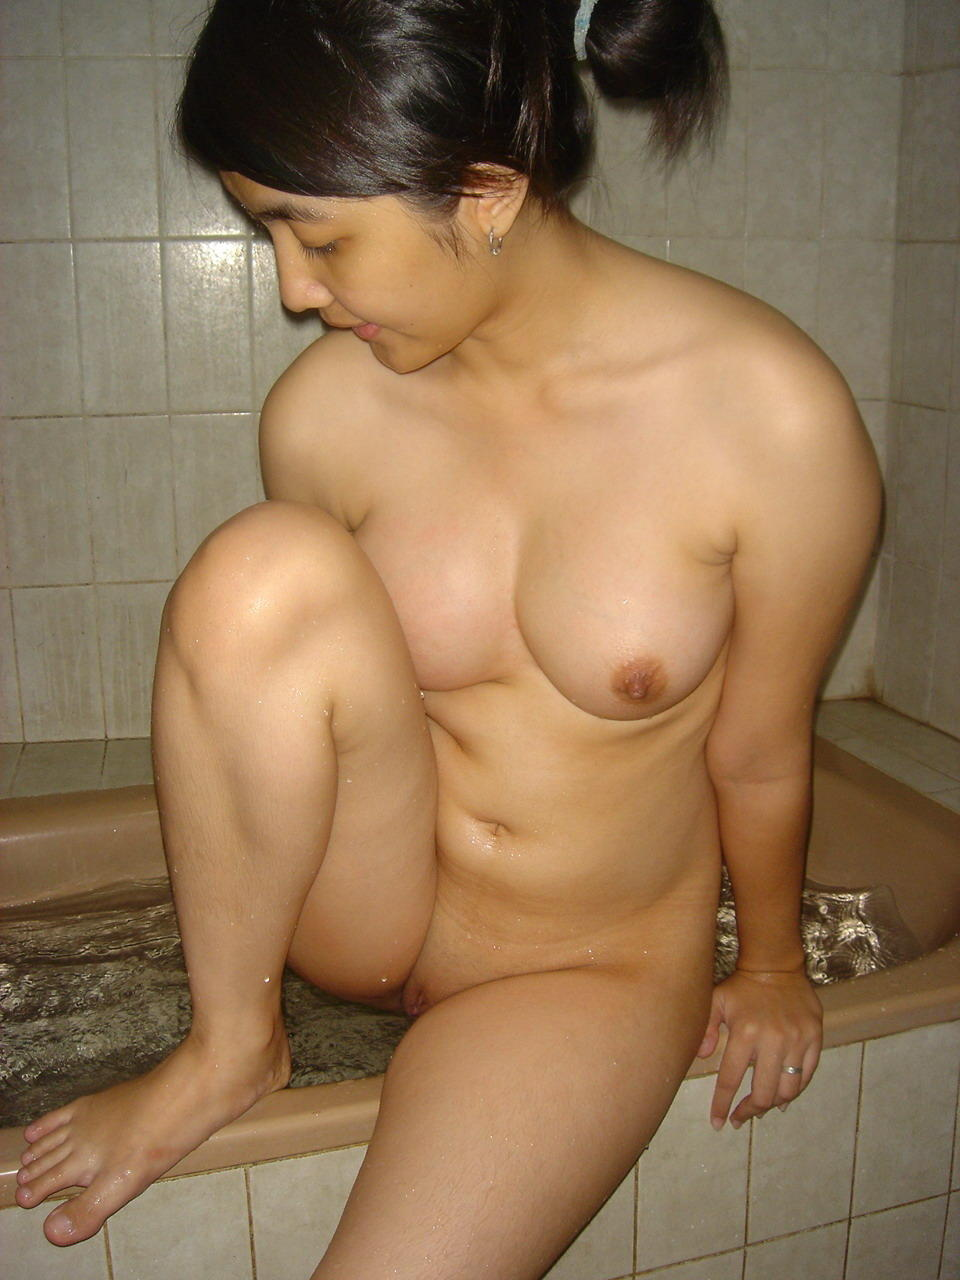 The indonesian girl nude photo gallery valuable piece